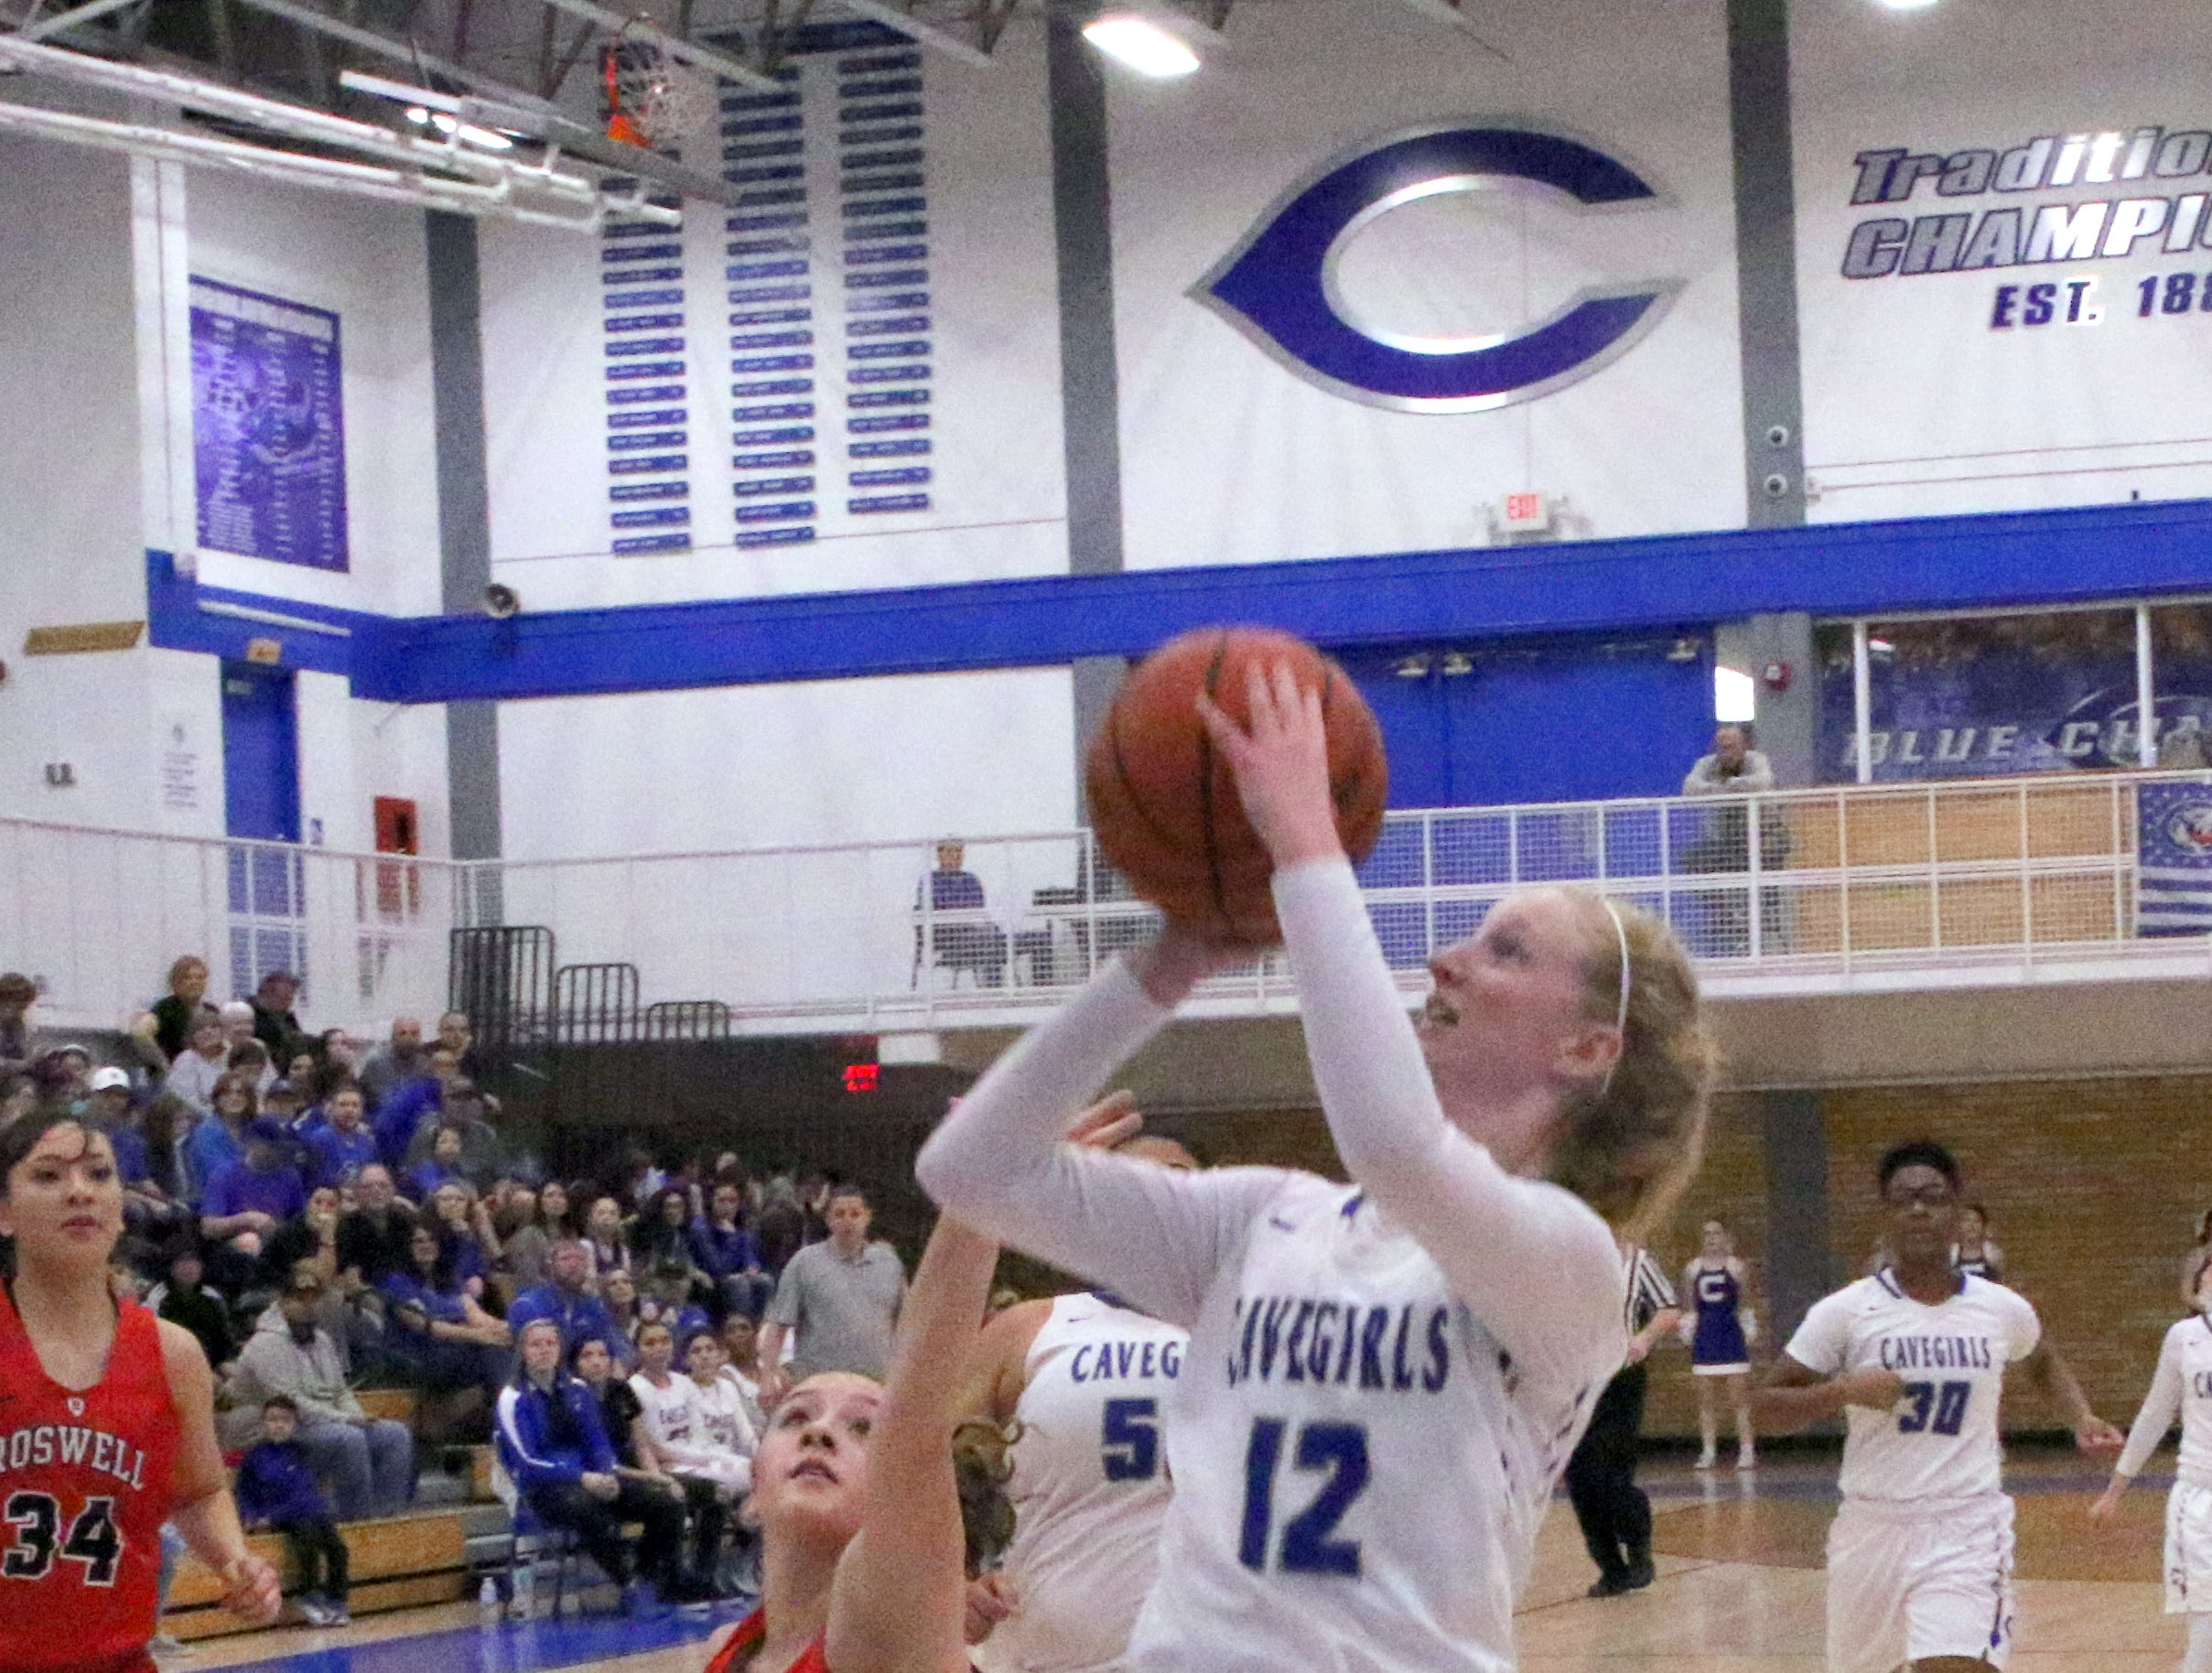 Carsyn Boswell gets a fastbreak shot during Friday's game.